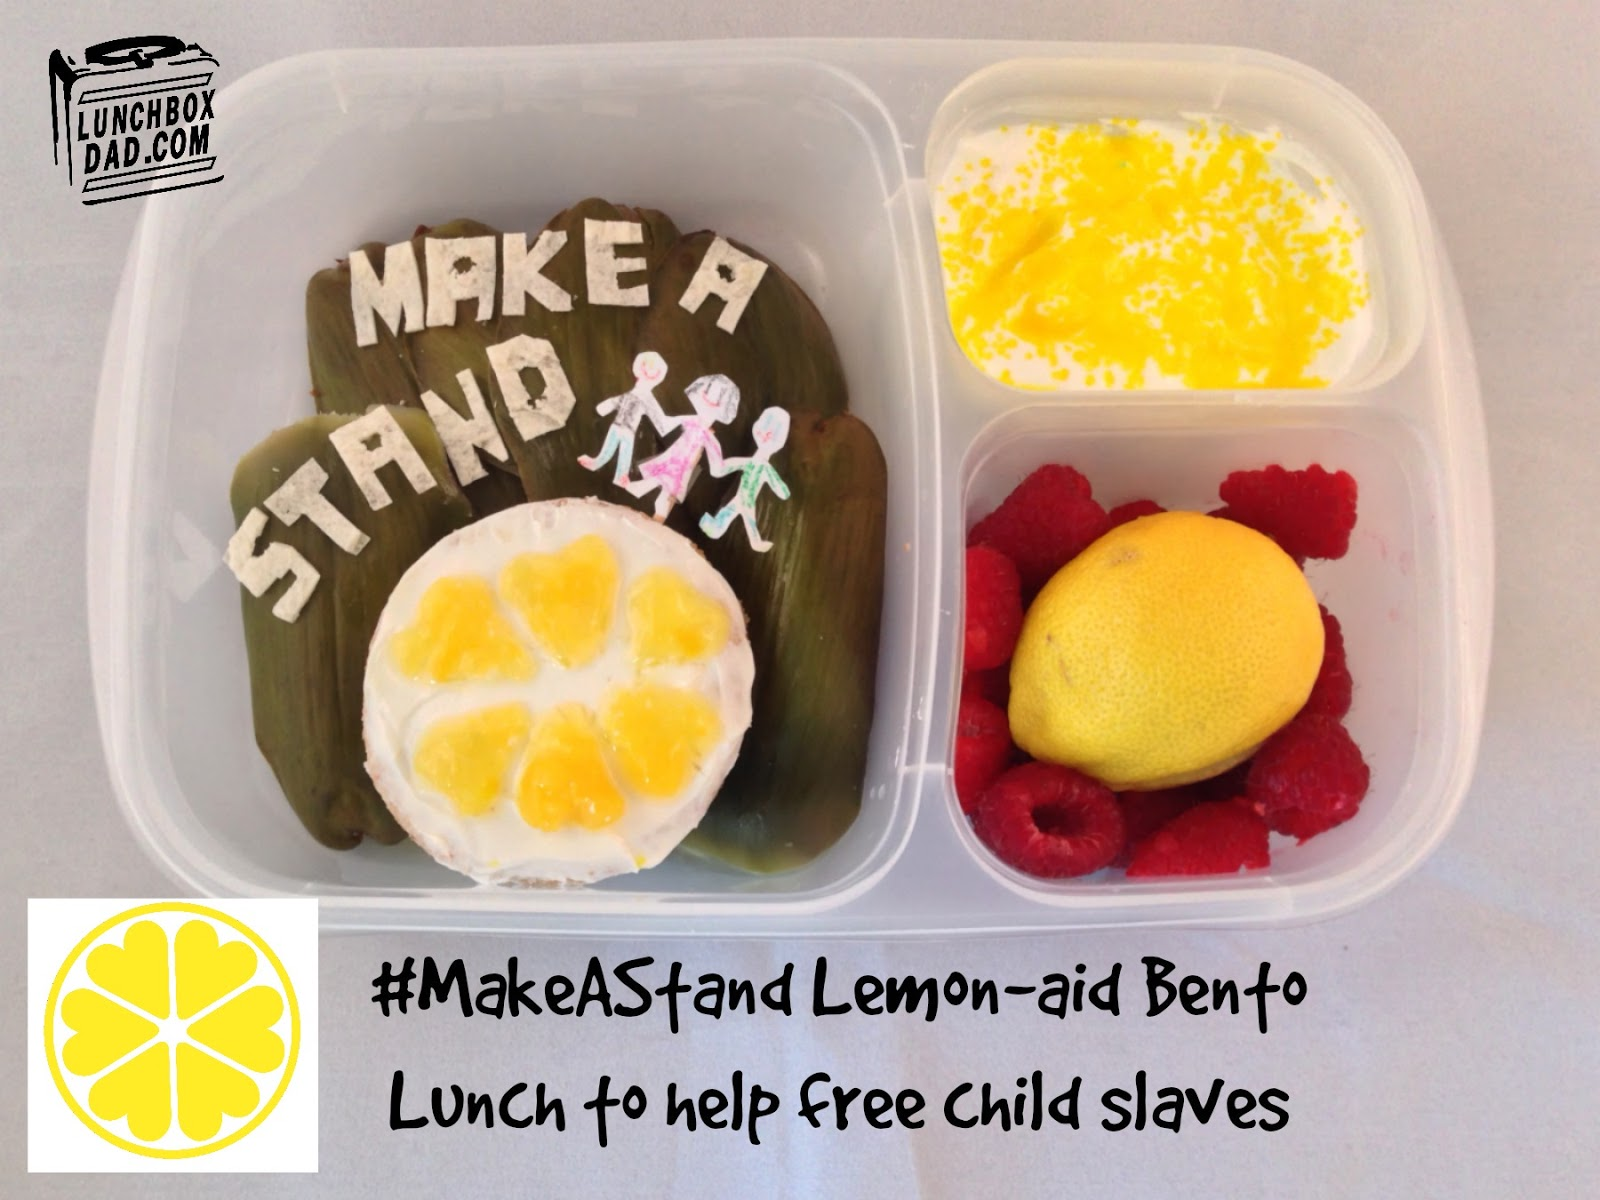 #MakeAStand Bento lunch to help free child slaves